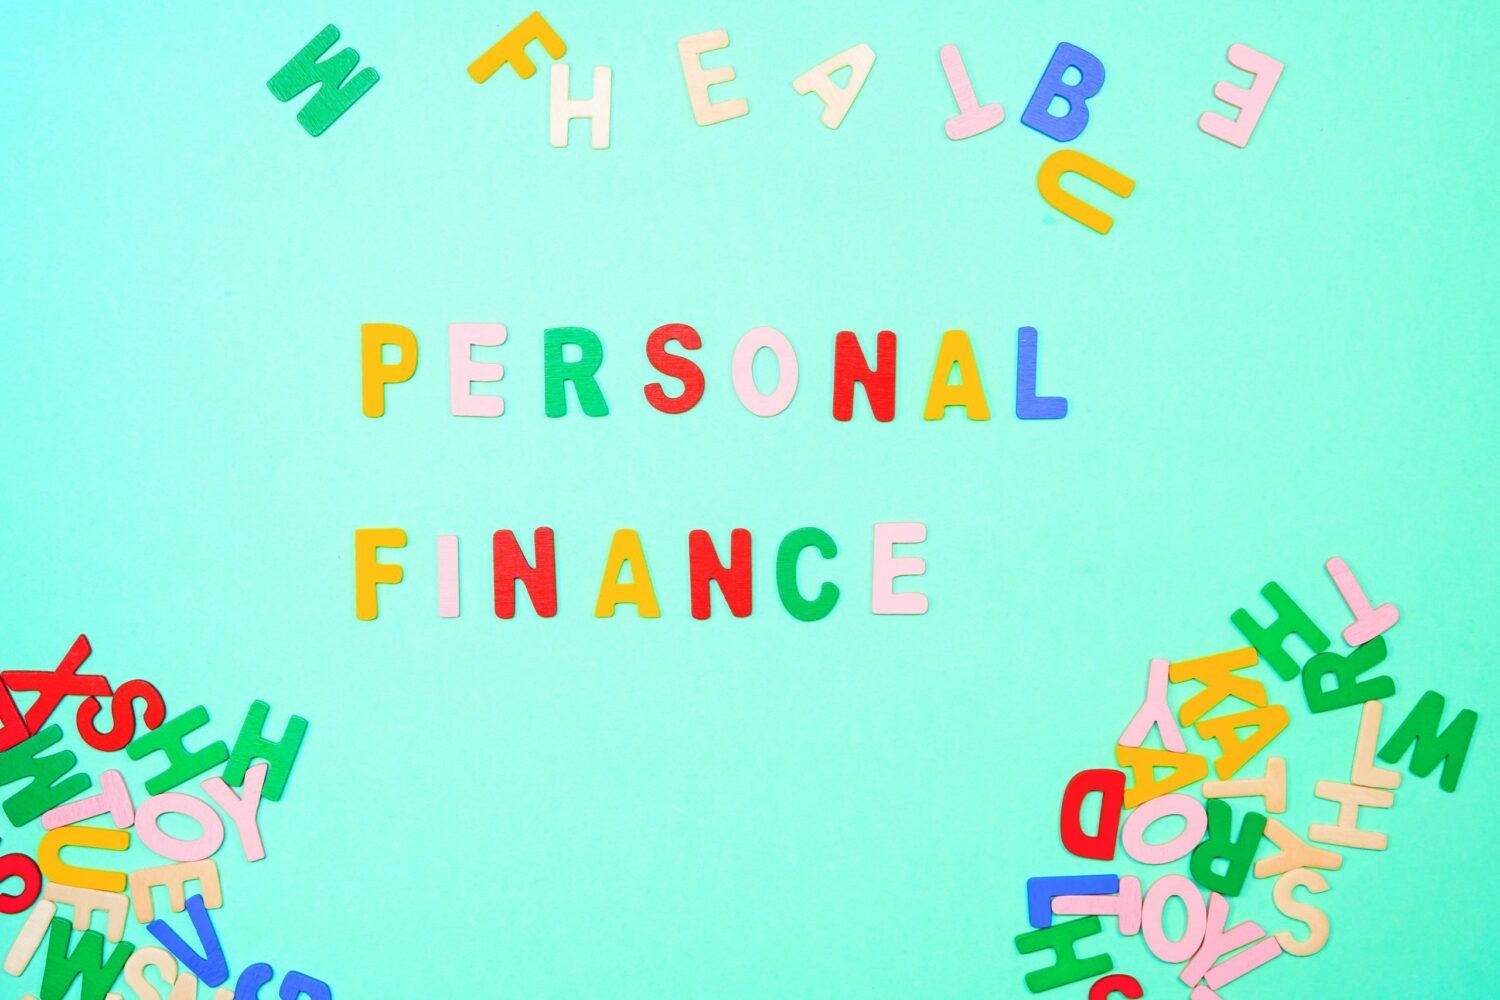 covid-19 affecting personal finance coloured letters on board